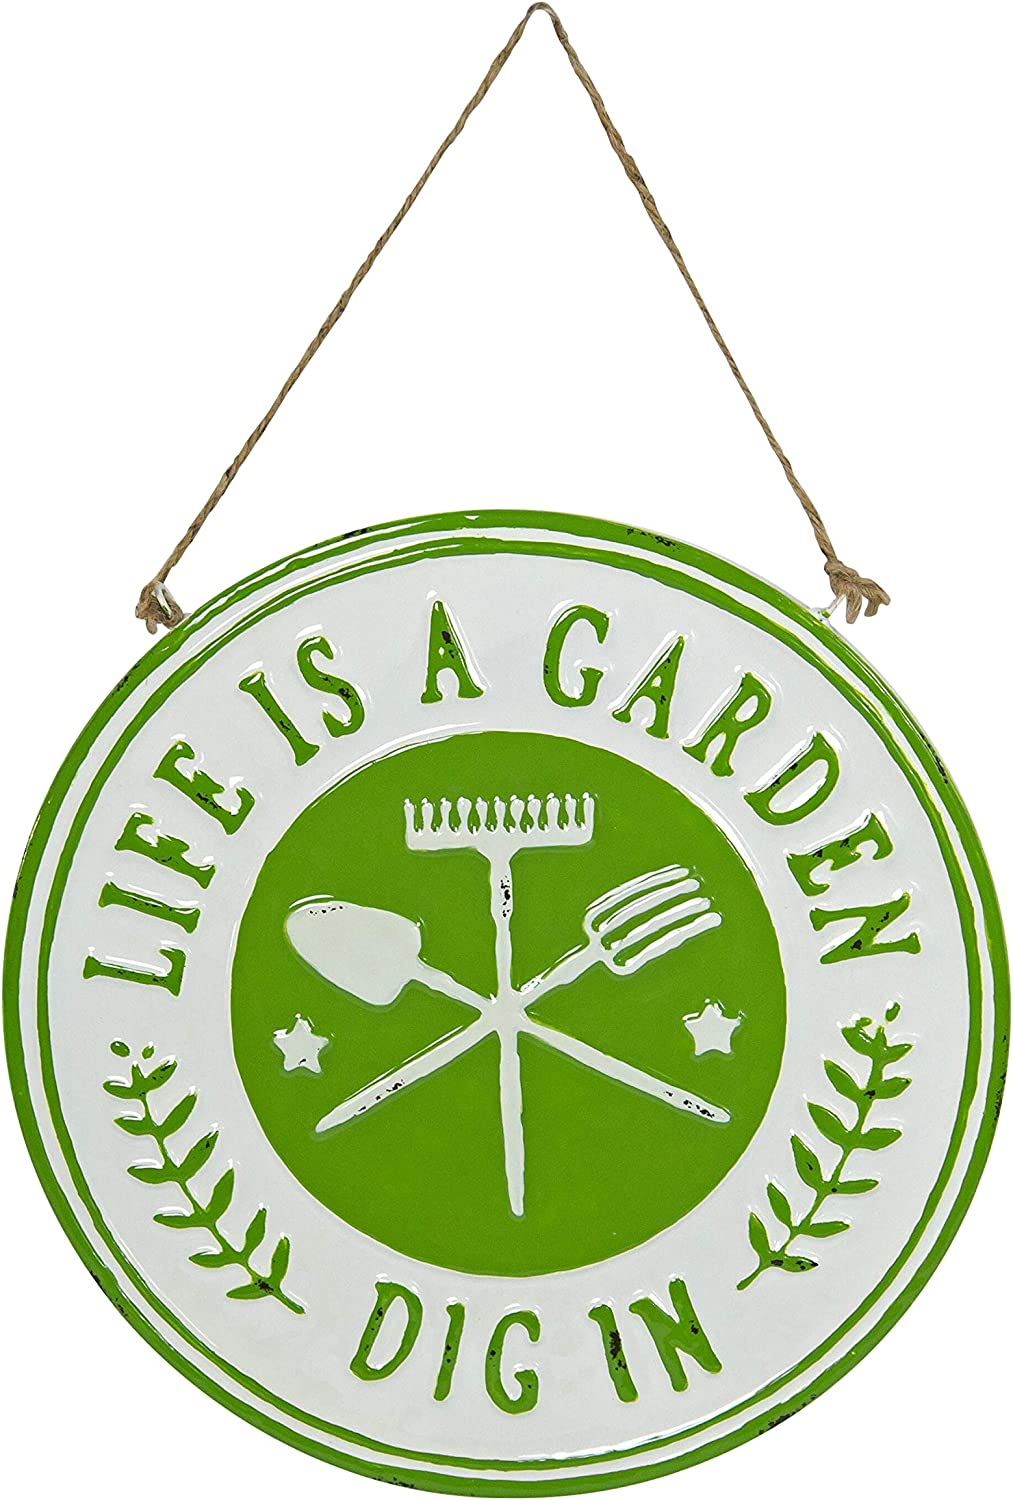 VIP Home & Garden SB1222 Round Metal Garden Sign with Rope Hanger Life is A Garden, Dig in Wall Mounted Plaque Wall Art, 12-inch Diameter